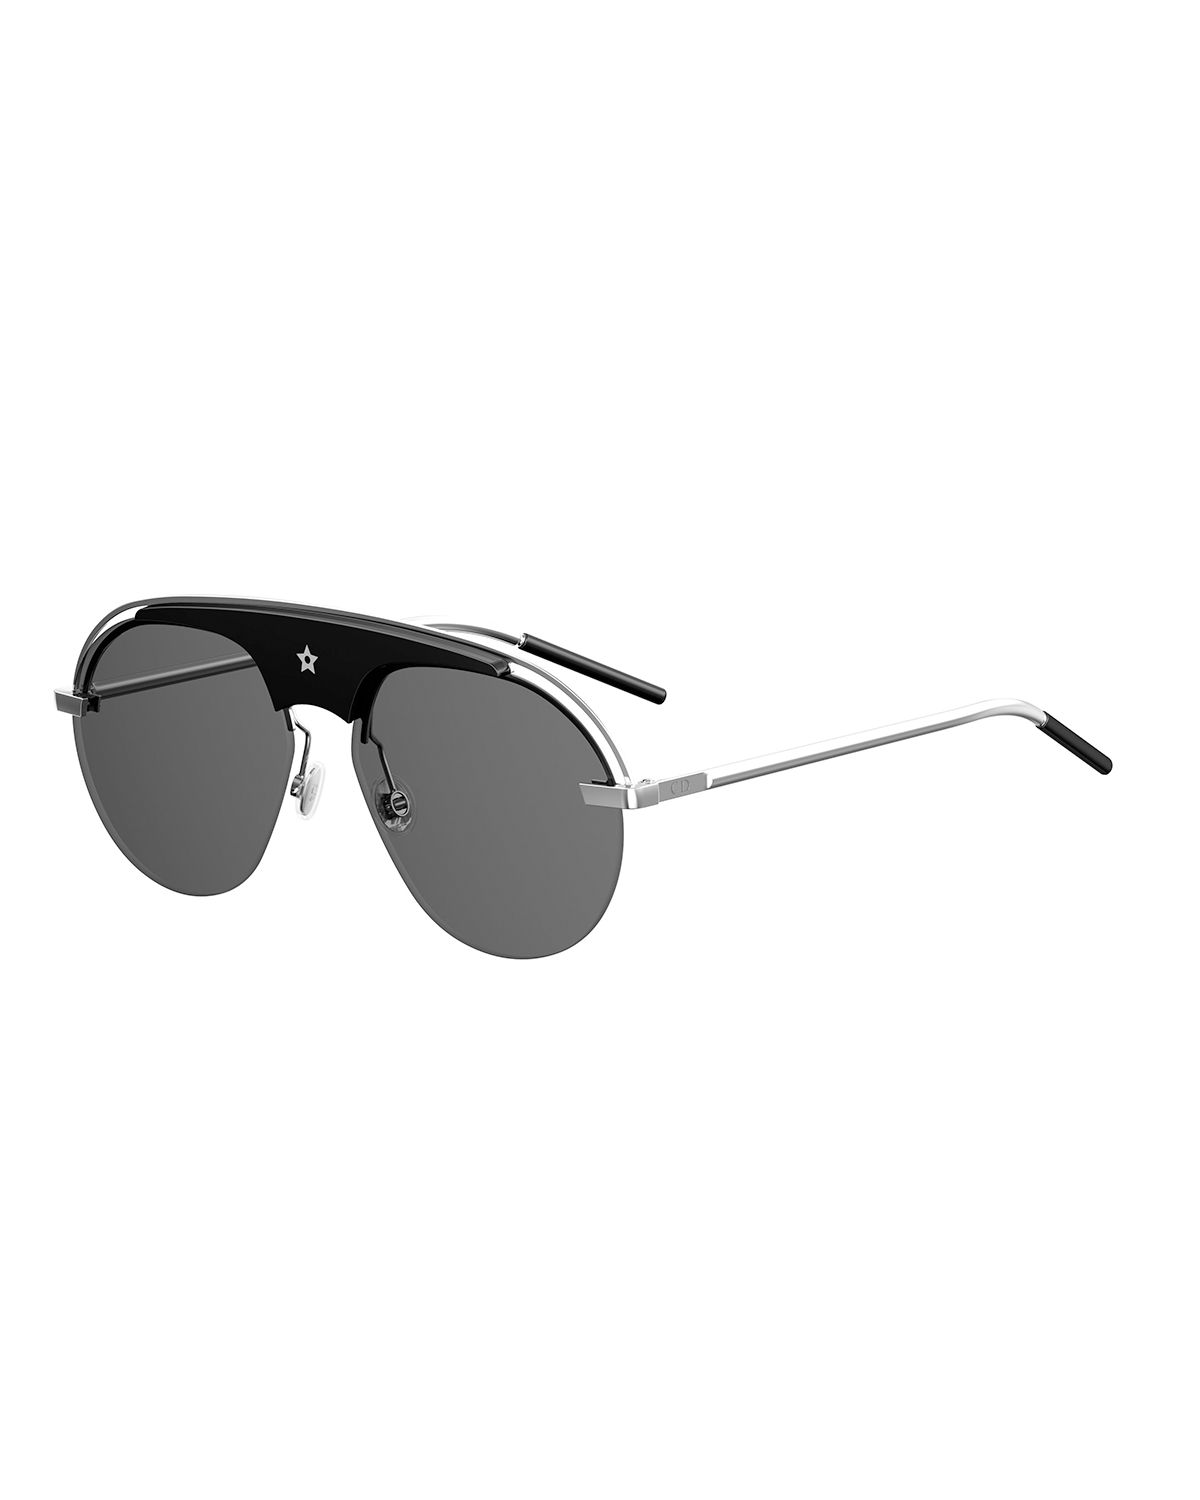 48d2a824bfe9f Dior Dio(R)evolution Aviator Sunglasses